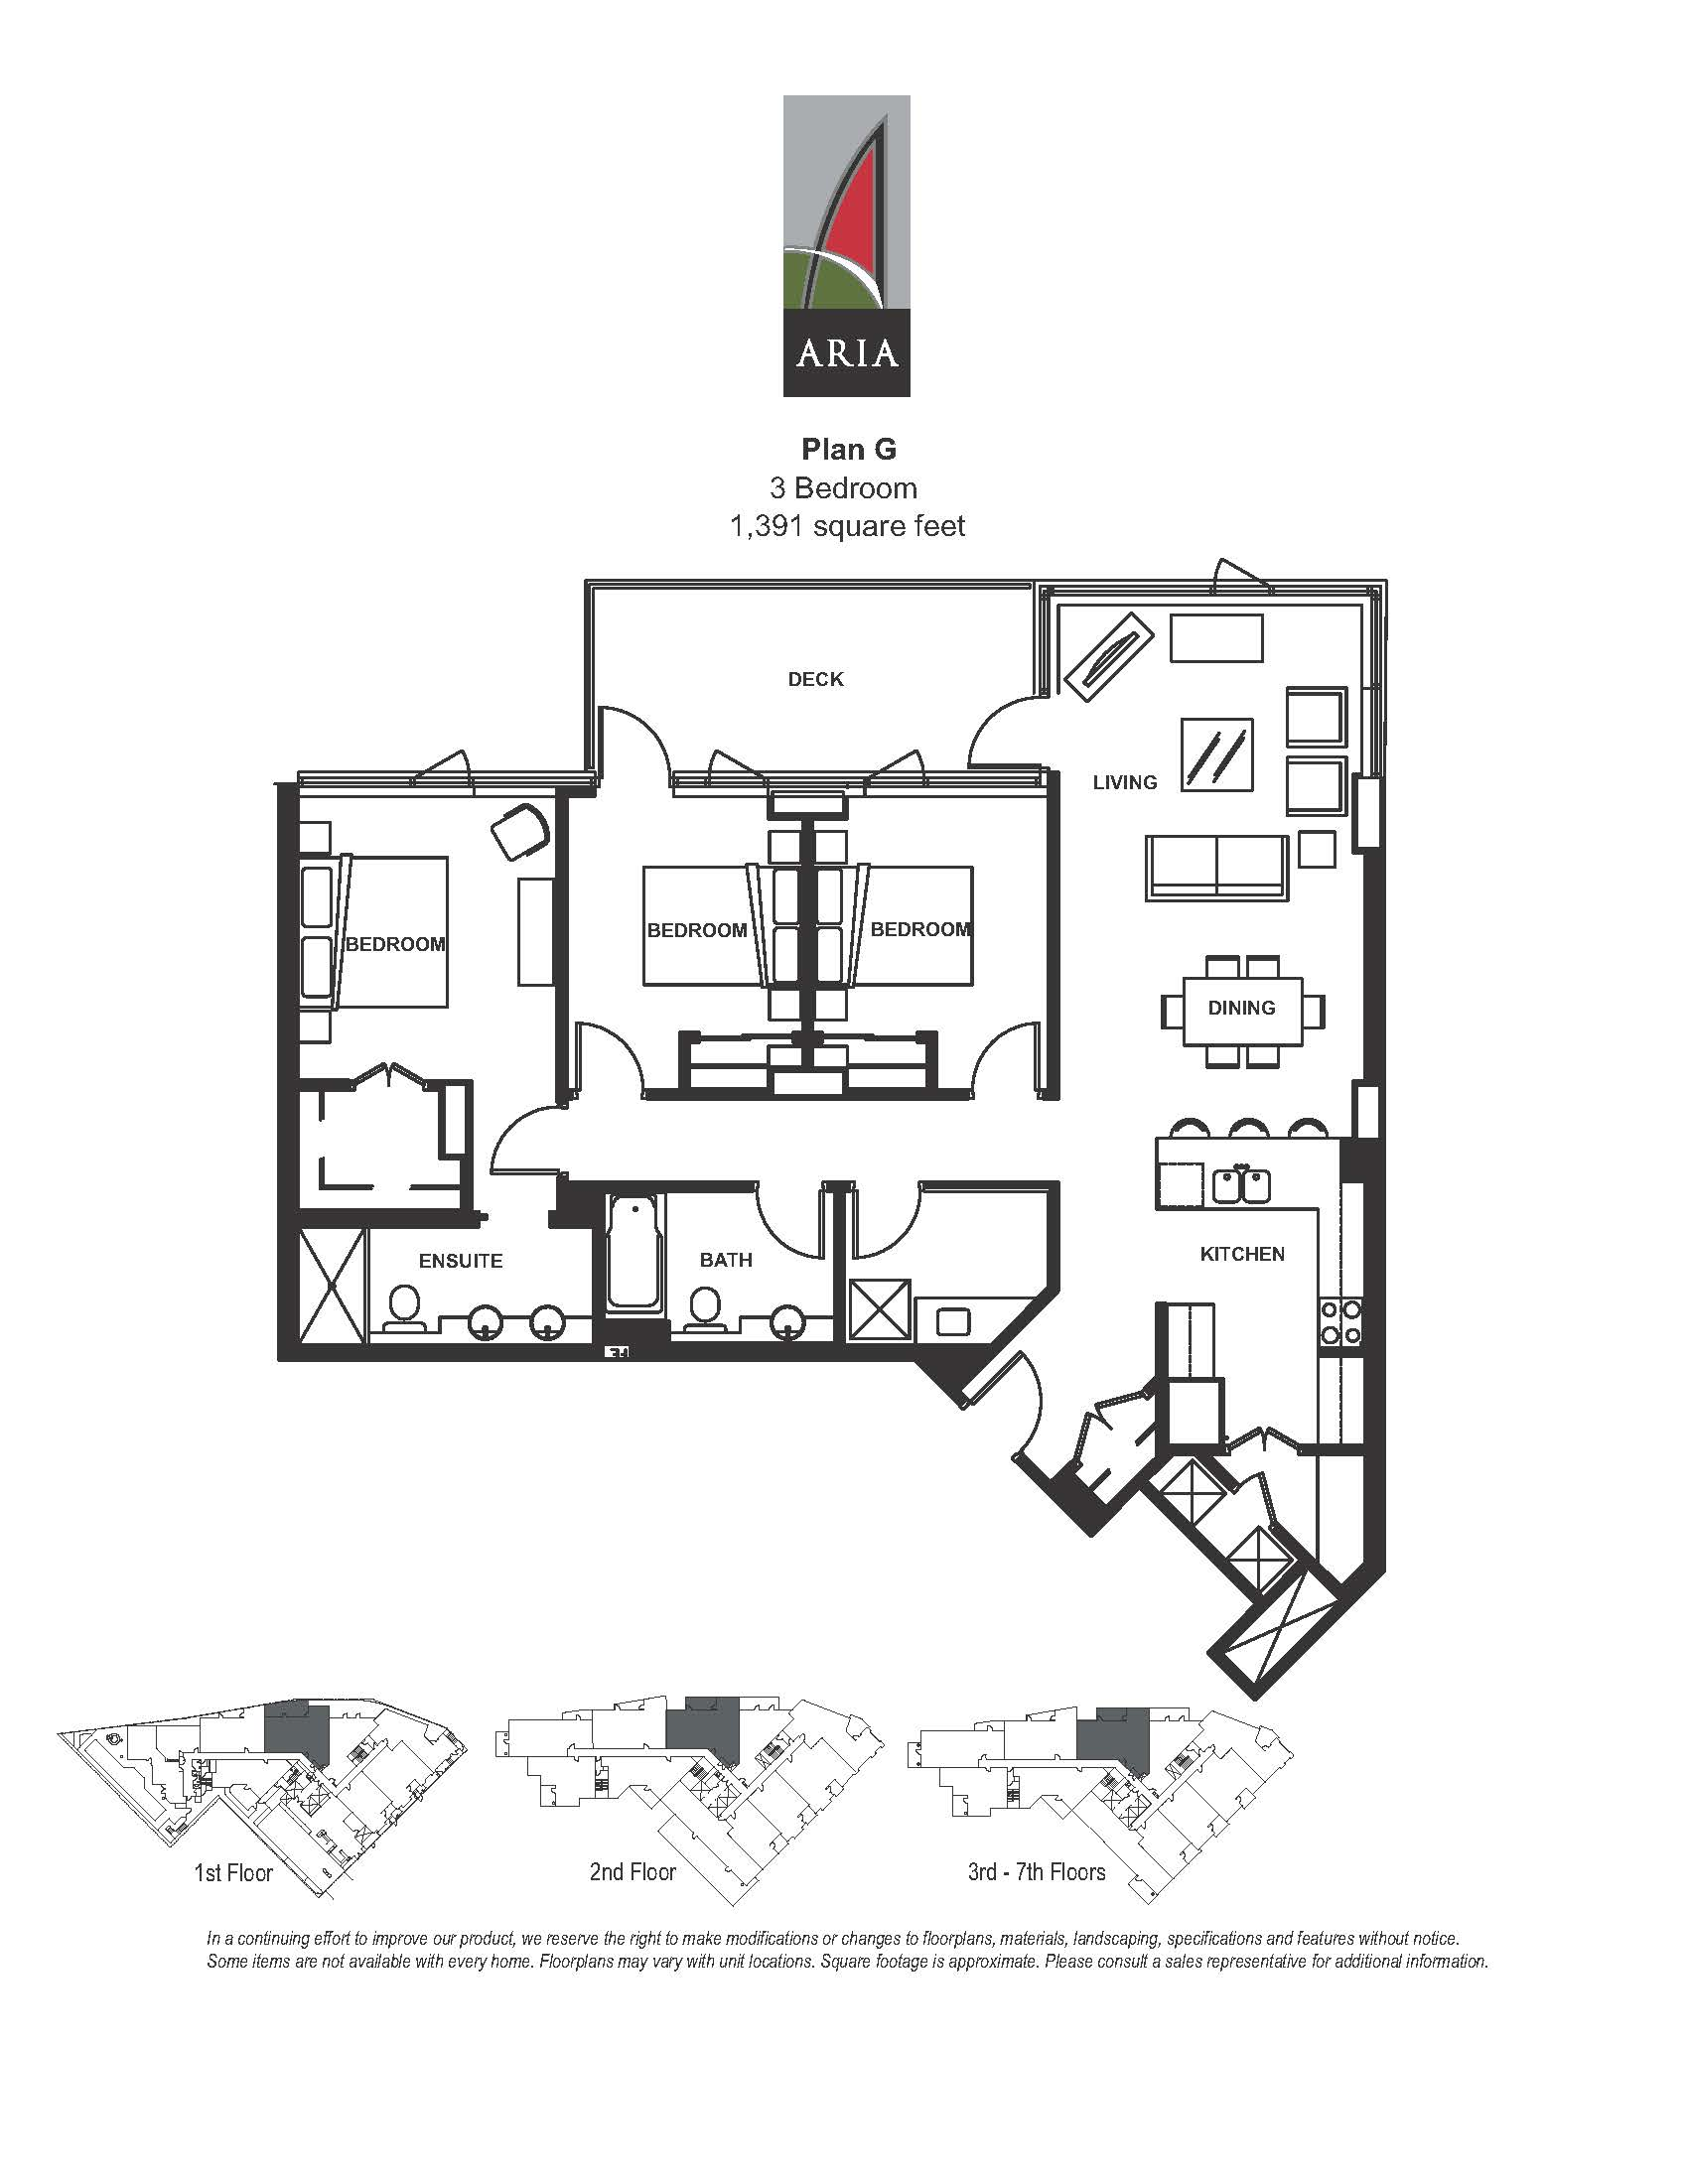 Aria 3 Bedroom - Plan G